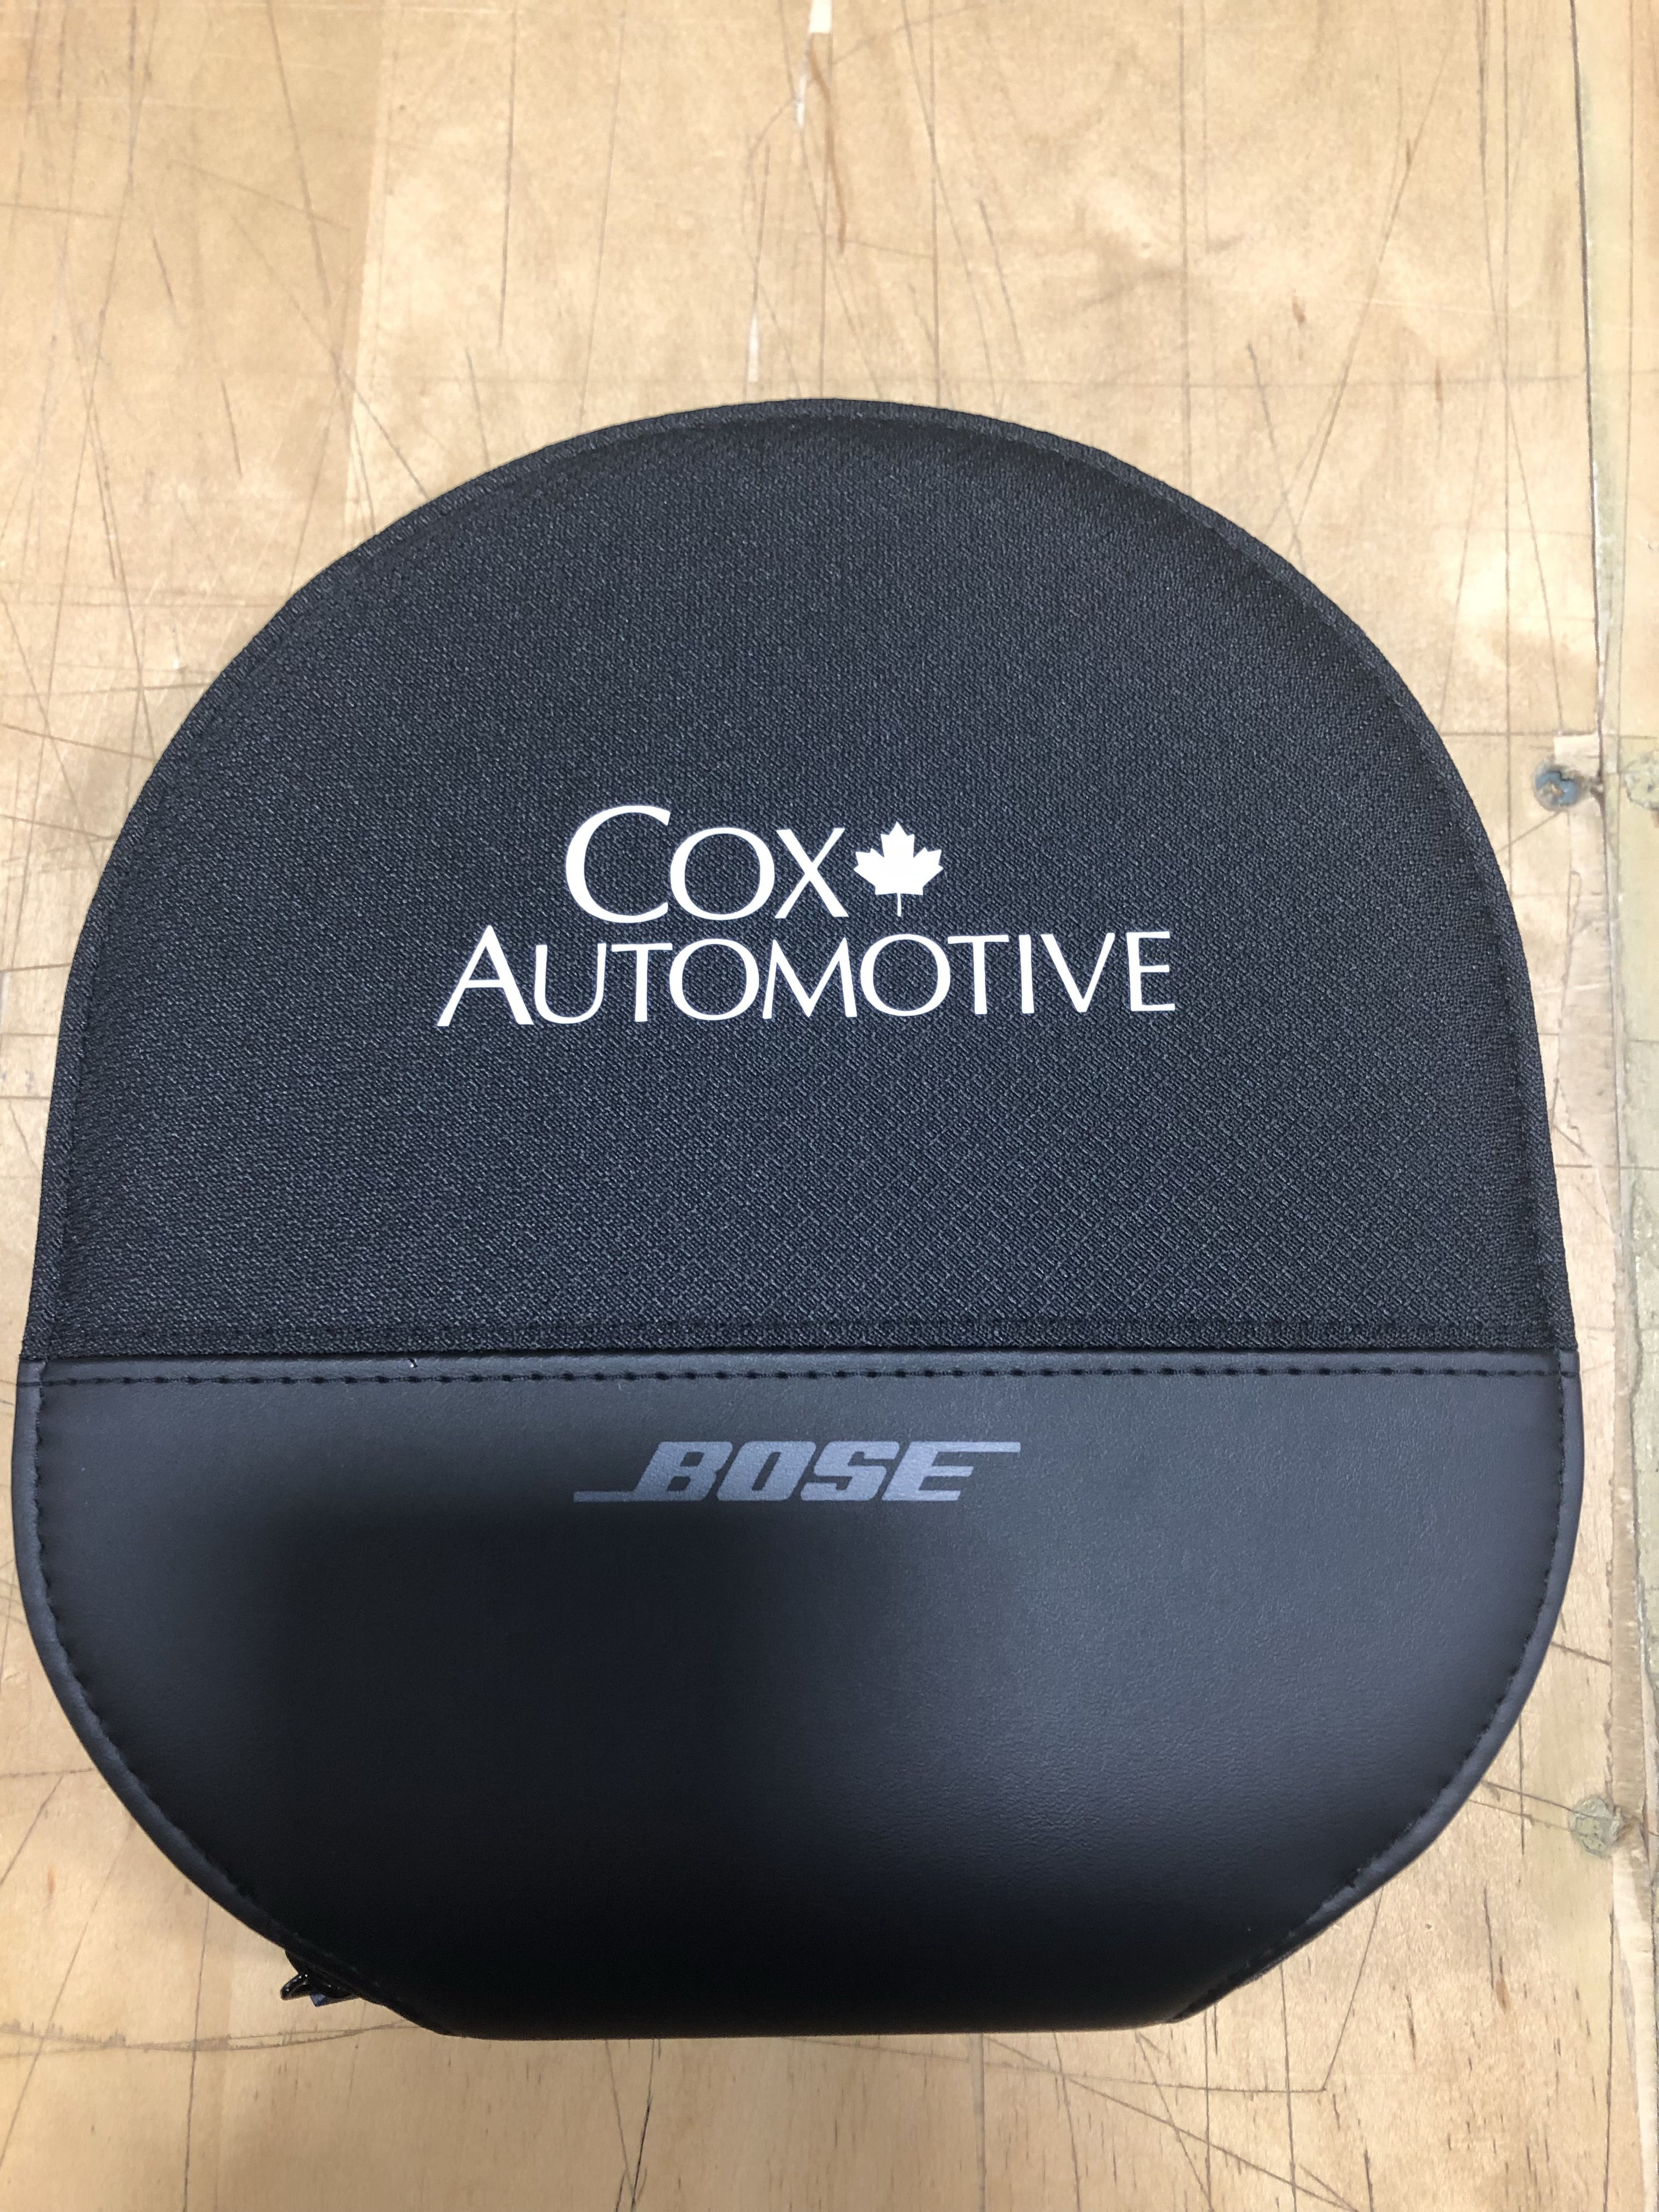 COX AUTOMOTIVE BOSE HEADPHONE CASE